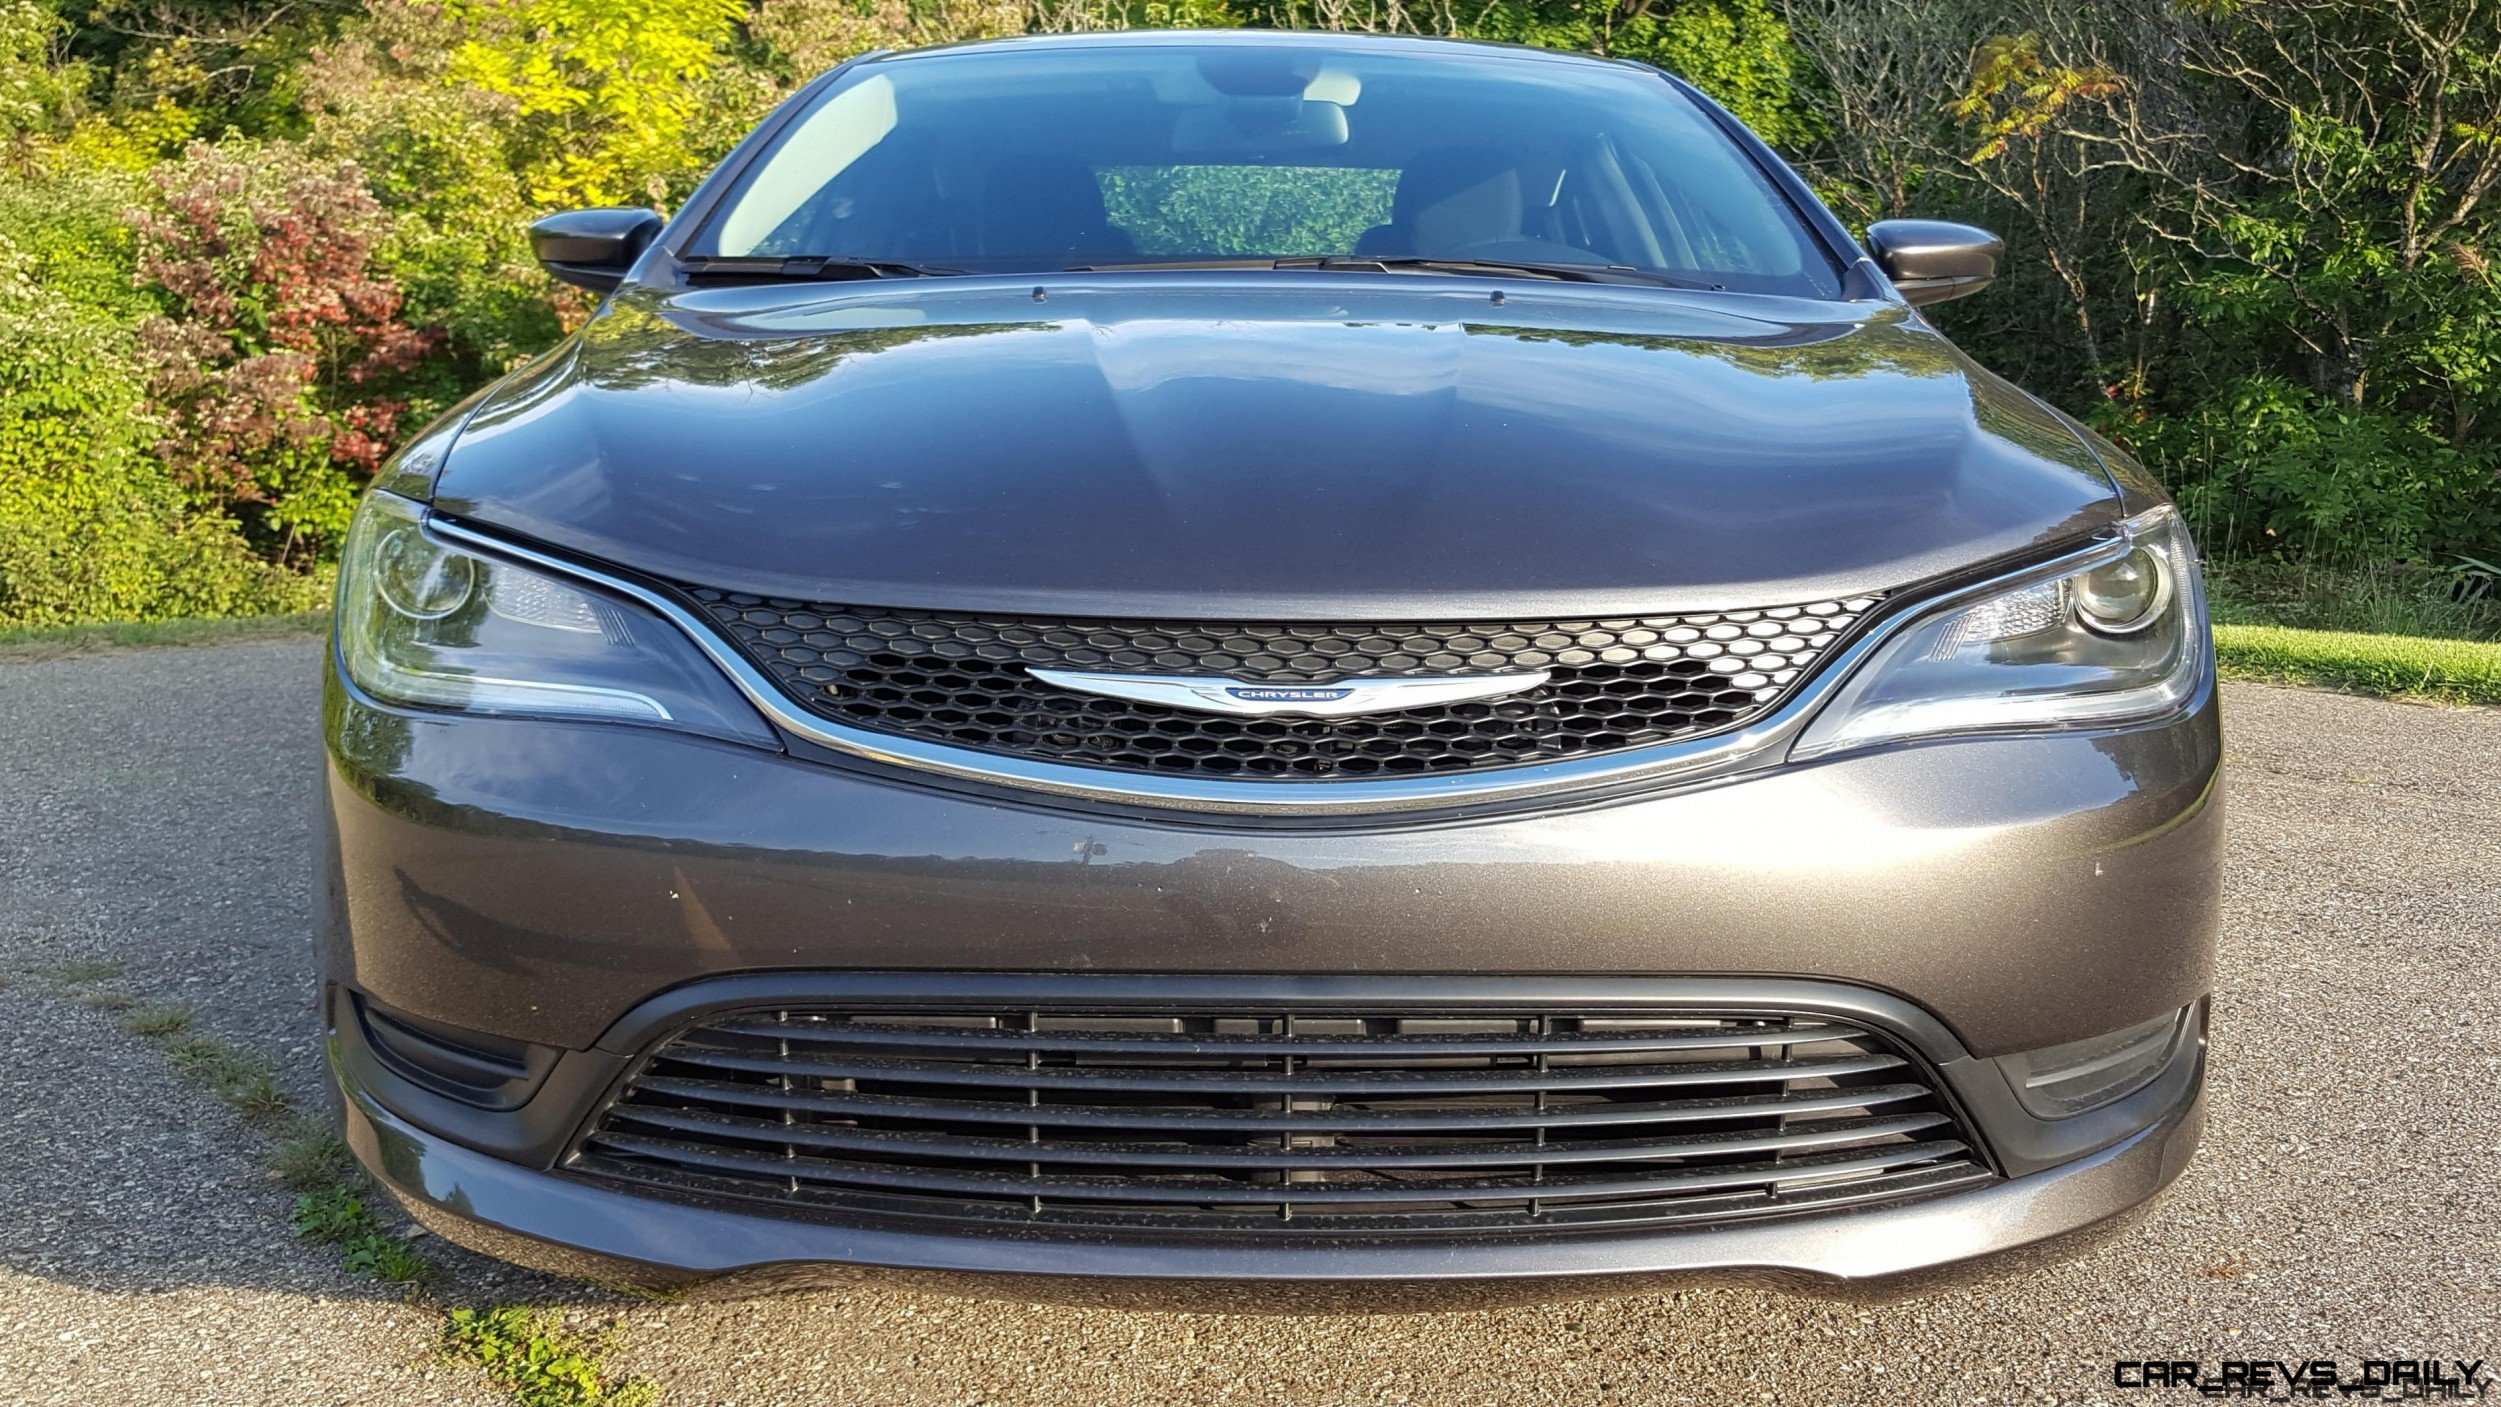 photo vehicle sacramento sedan chrysler ca headlight lx details